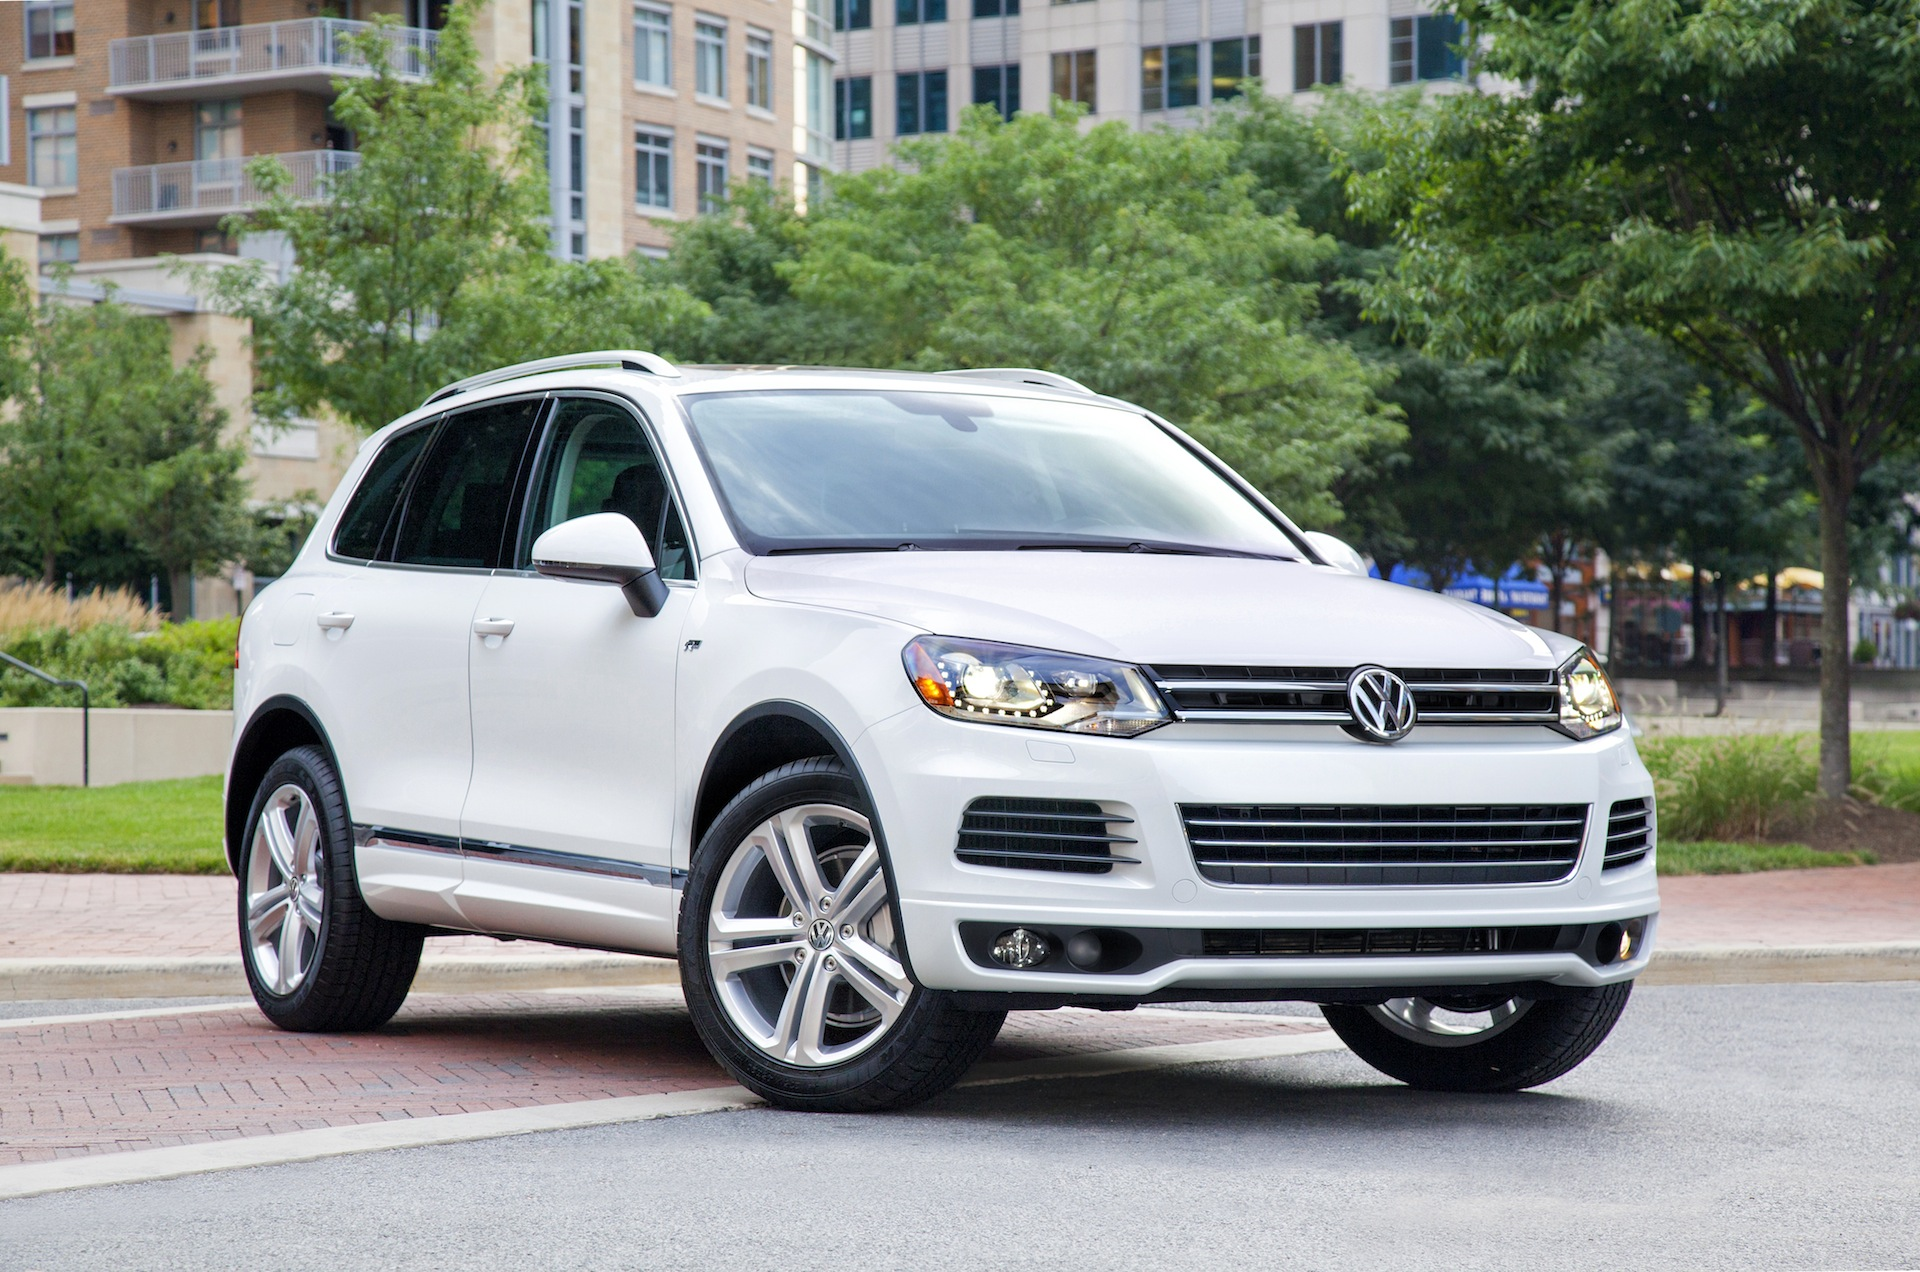 2014 volkswagen touareg vw performance review   the car connection